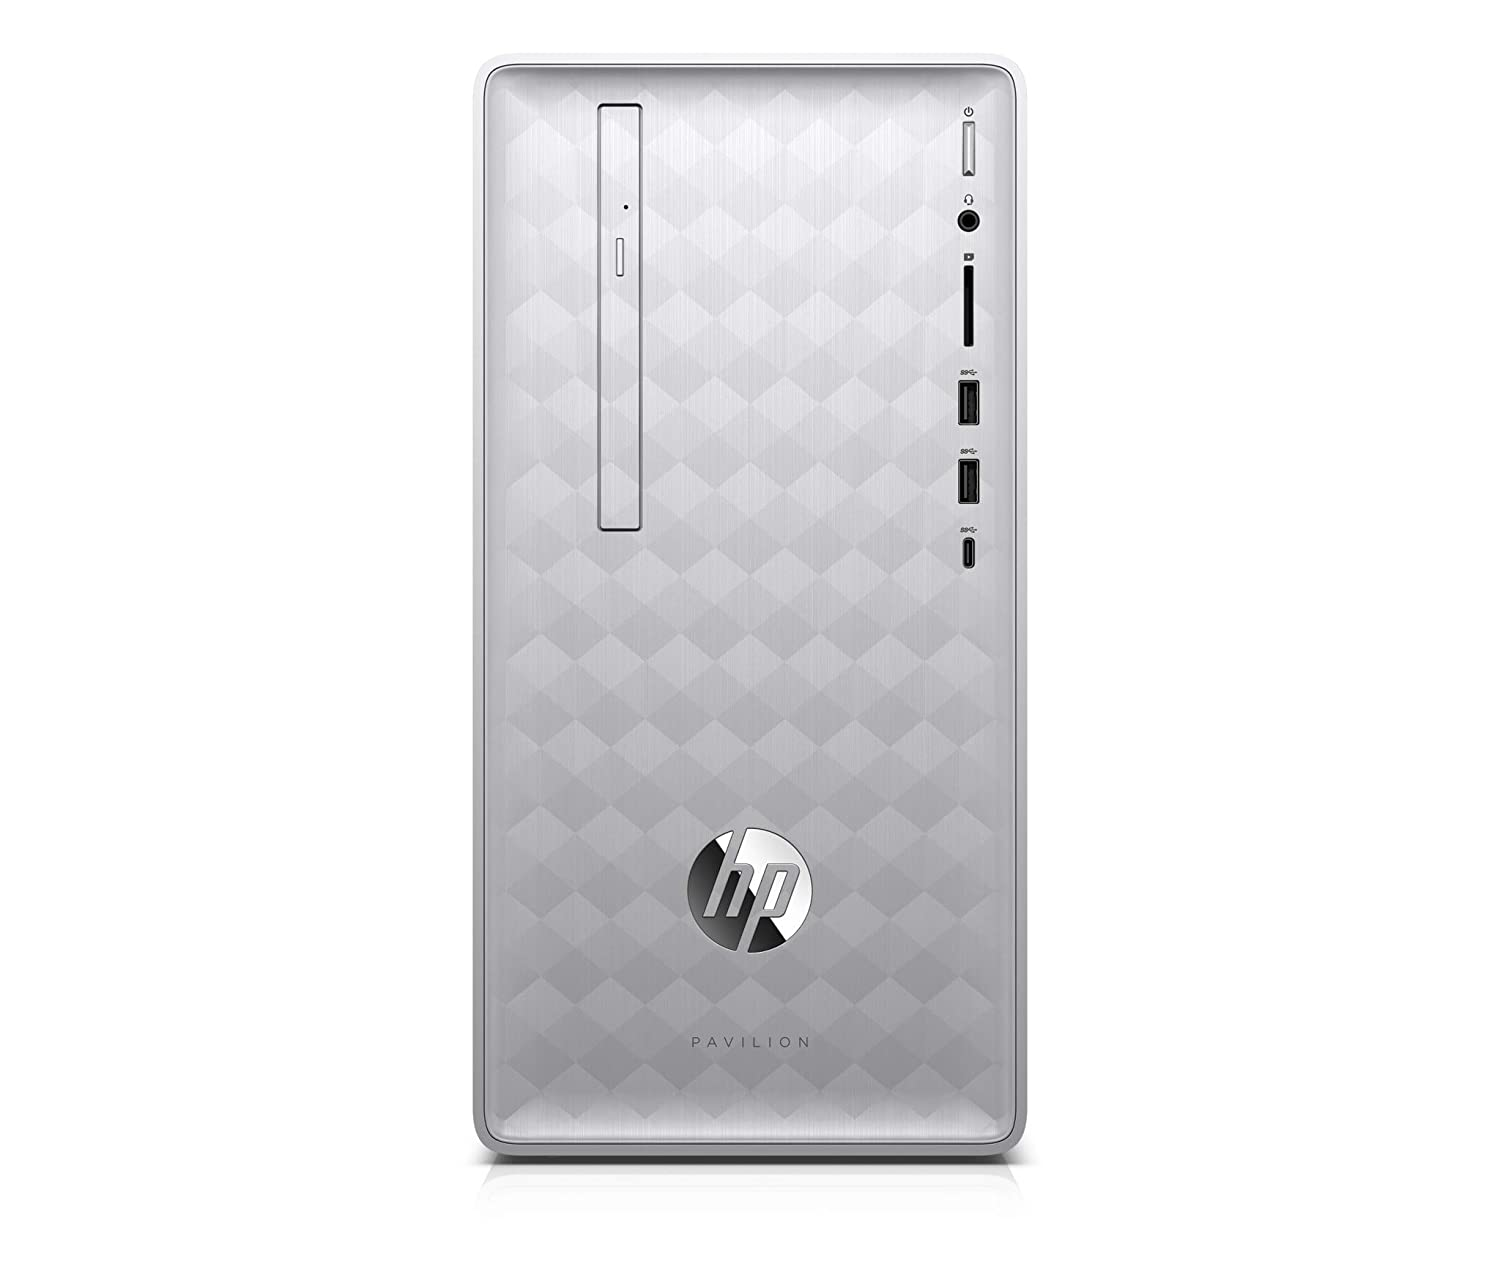 HP Pavilion 590-p0633ng 3,5 GHz AMD Ryzen 3 2200G Plata, Negro Mini Tower PC - Ordenador de sobremesa (3,5 GHz, AMD Ryzen 3, 8 GB, 1128 GB, DVD±RW, FreeDOS)